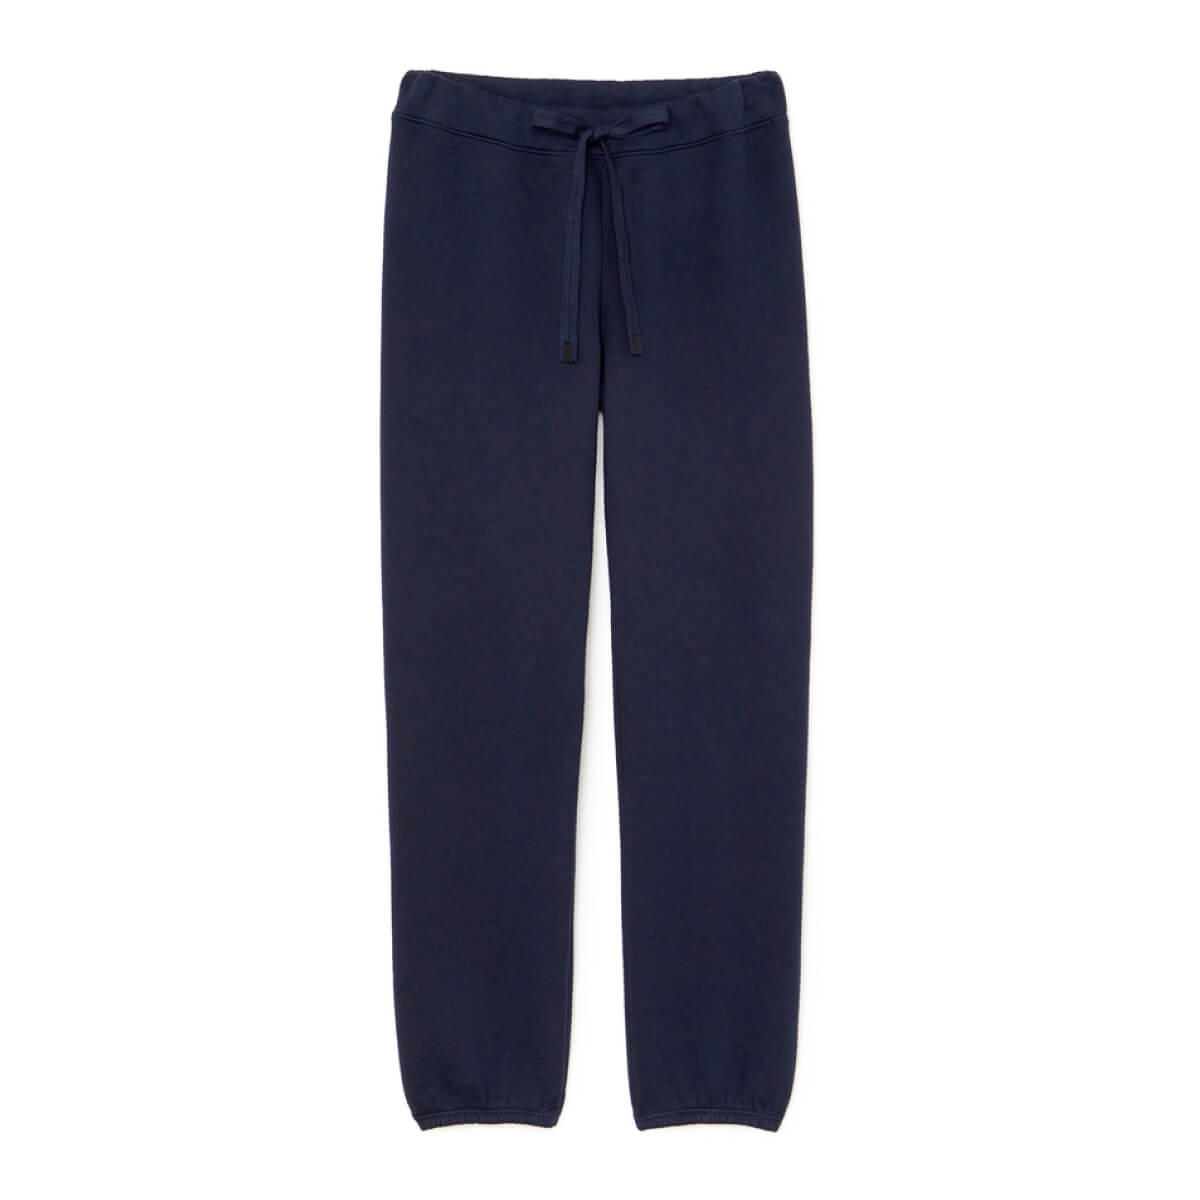 STATESIDE SWEATPANT